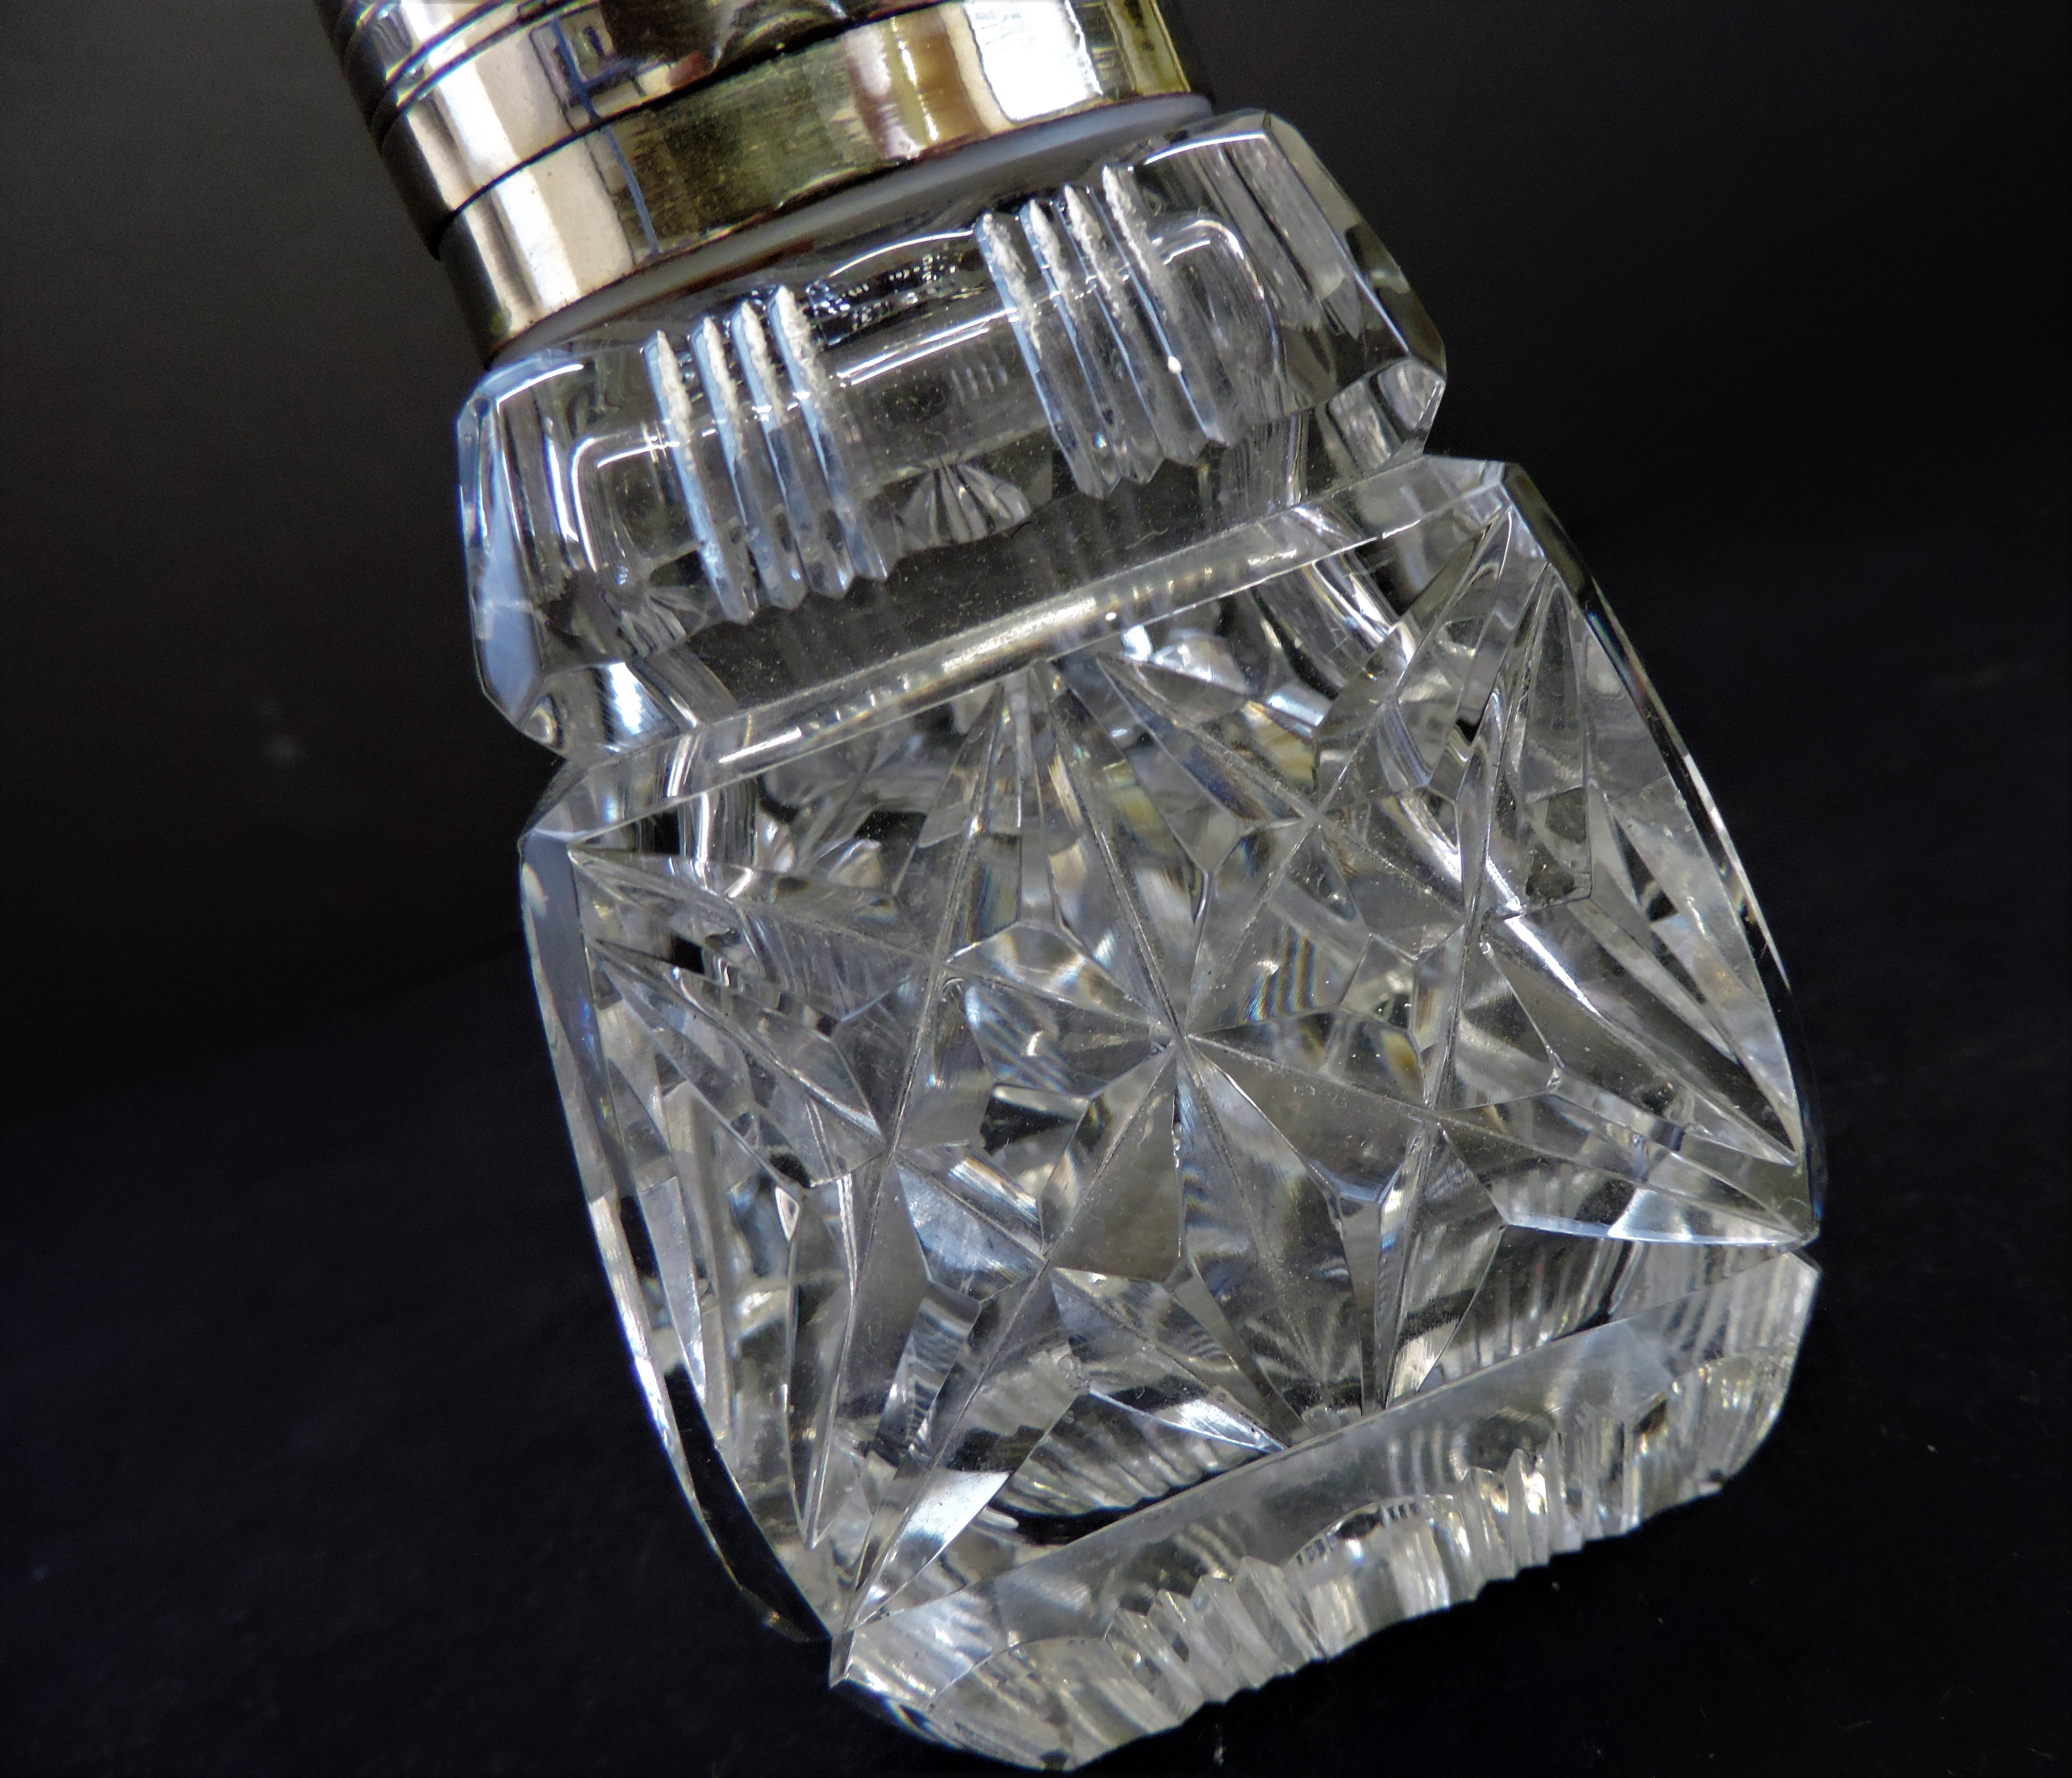 Vintage Silver Plate Cut Glass Sugar Shaker - Image 3 of 3